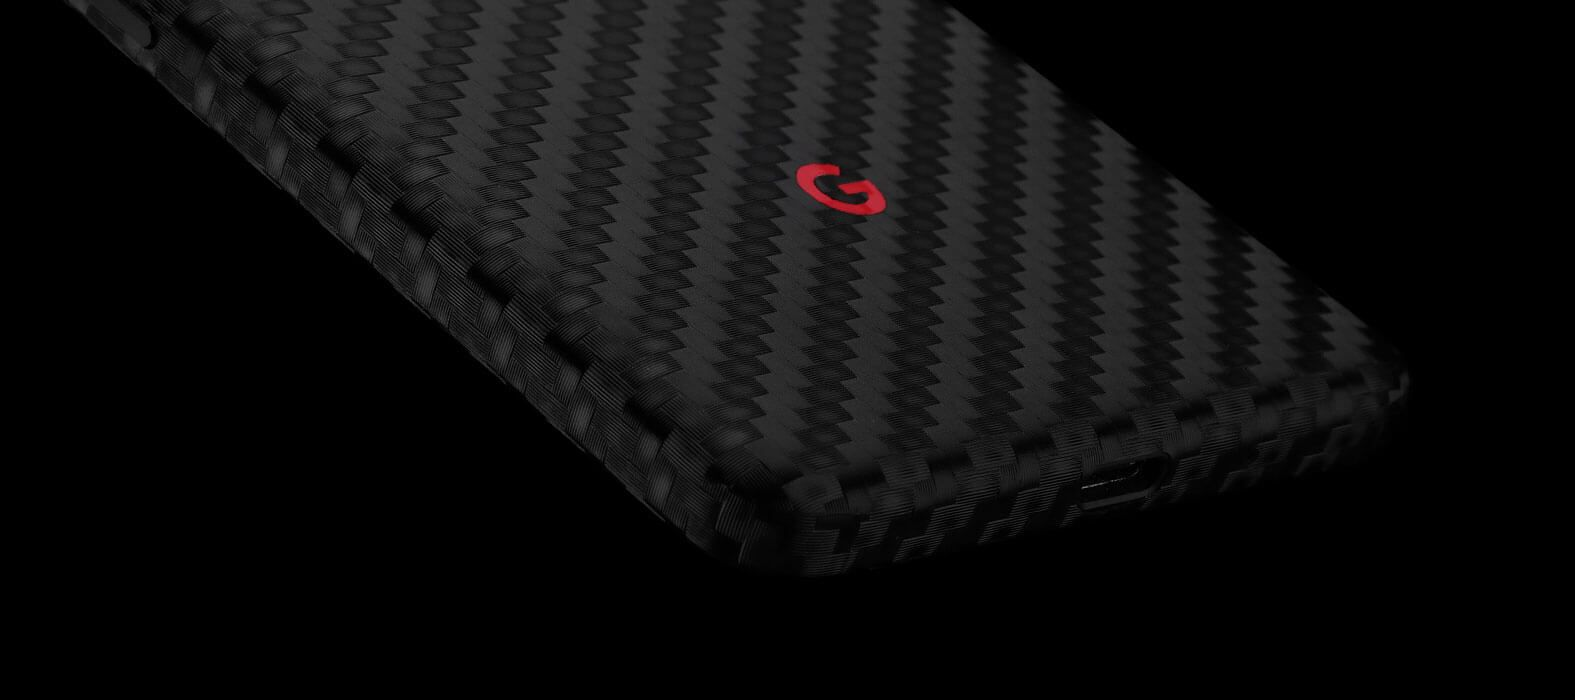 Pixel 2 XL Skins Black Carbon Fiber Wraps & Decals